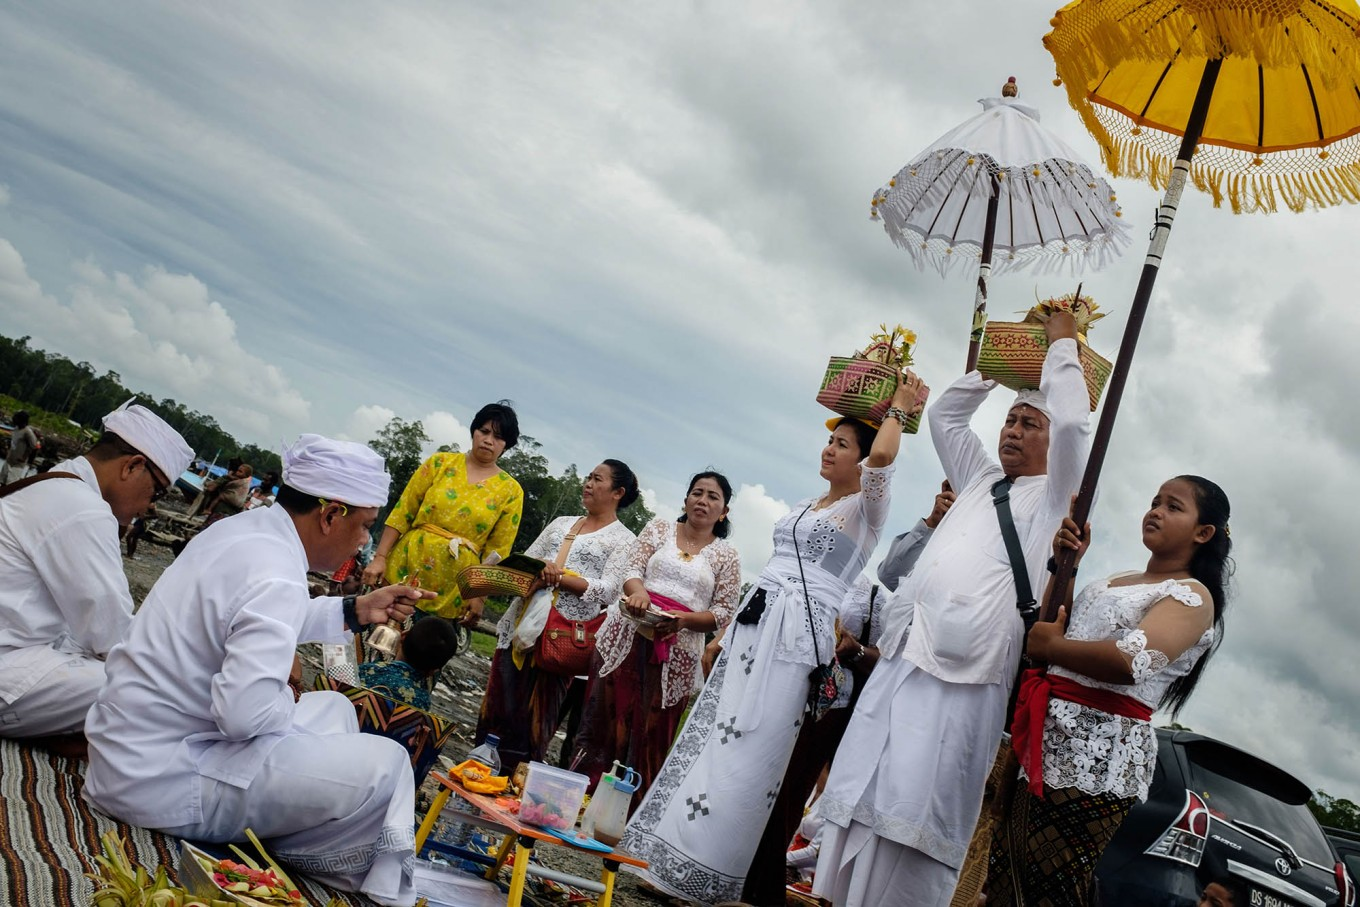 Timika is cloudy during the Melasti ceremony although weather in the city is usually clear. JP/Vembri Waluyas